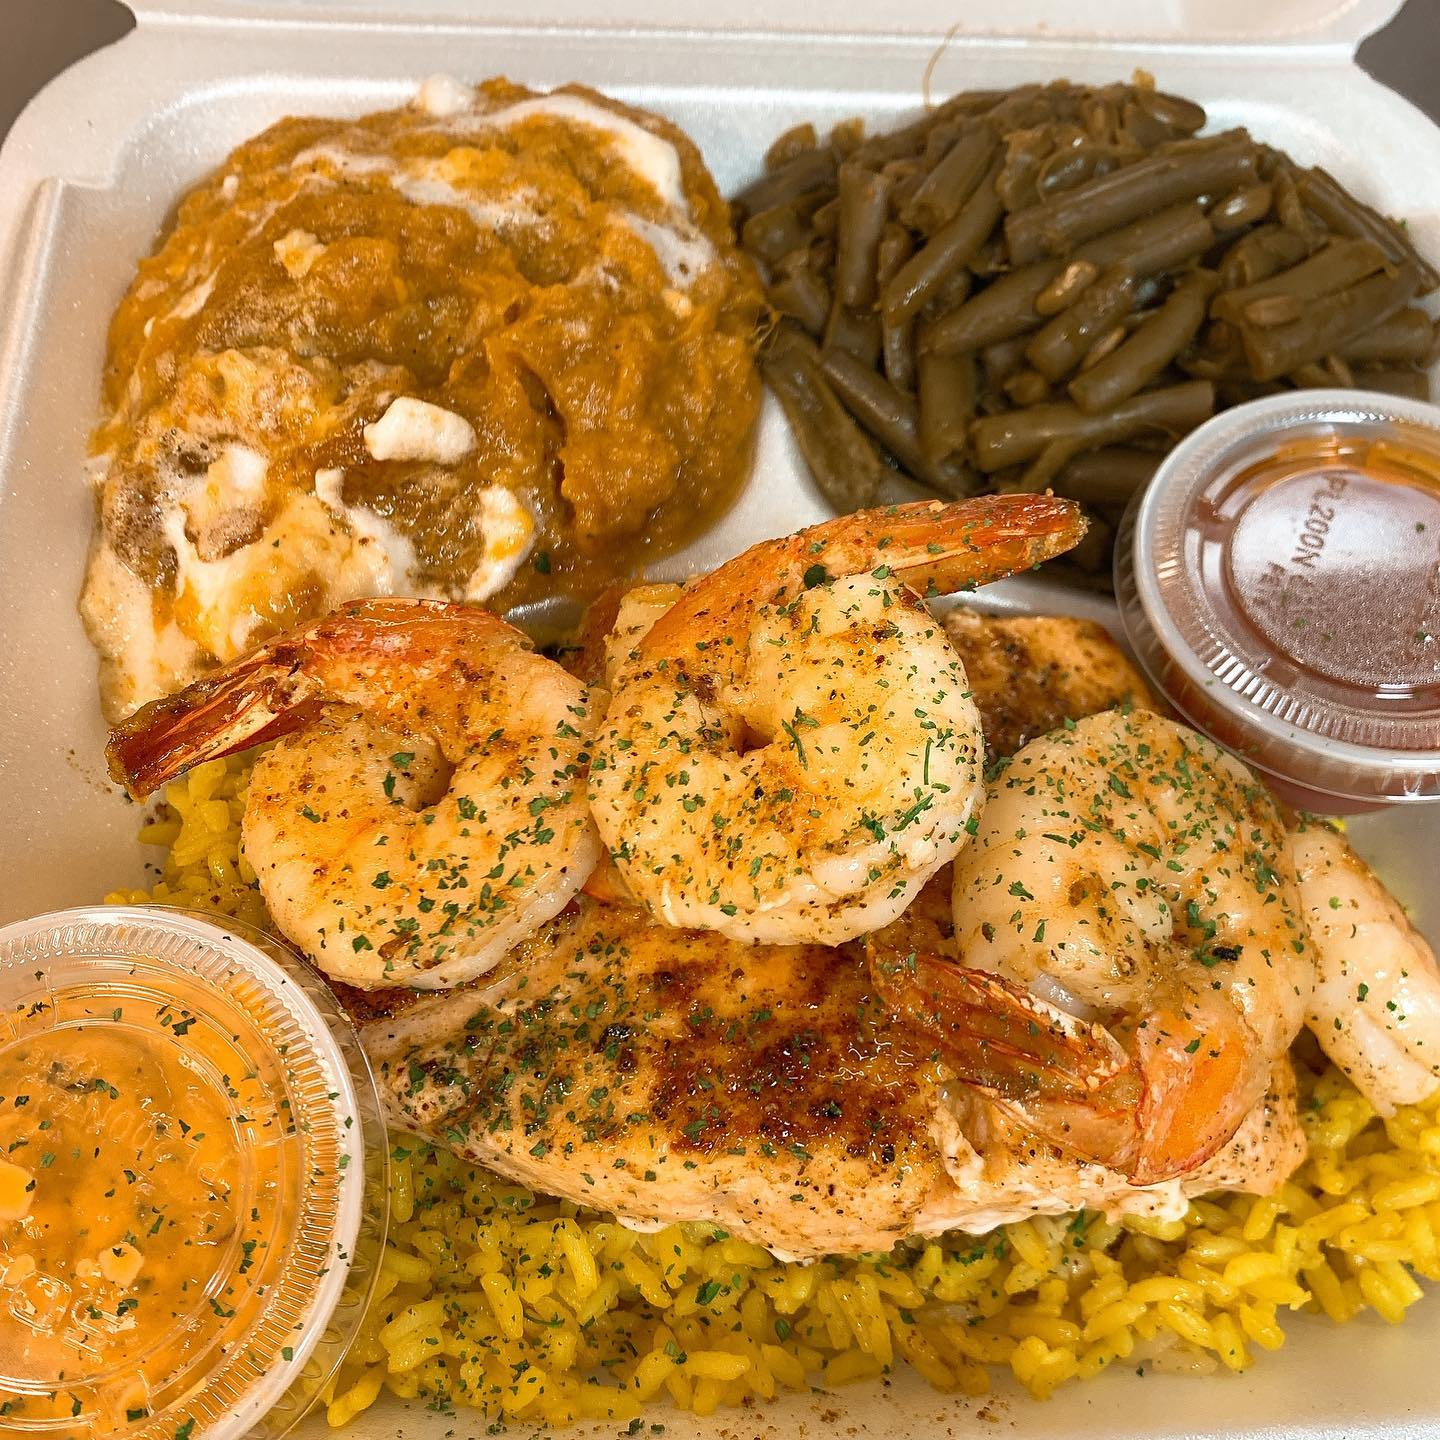 salmon and shrimp over rice with green beans and sweet potato casserole